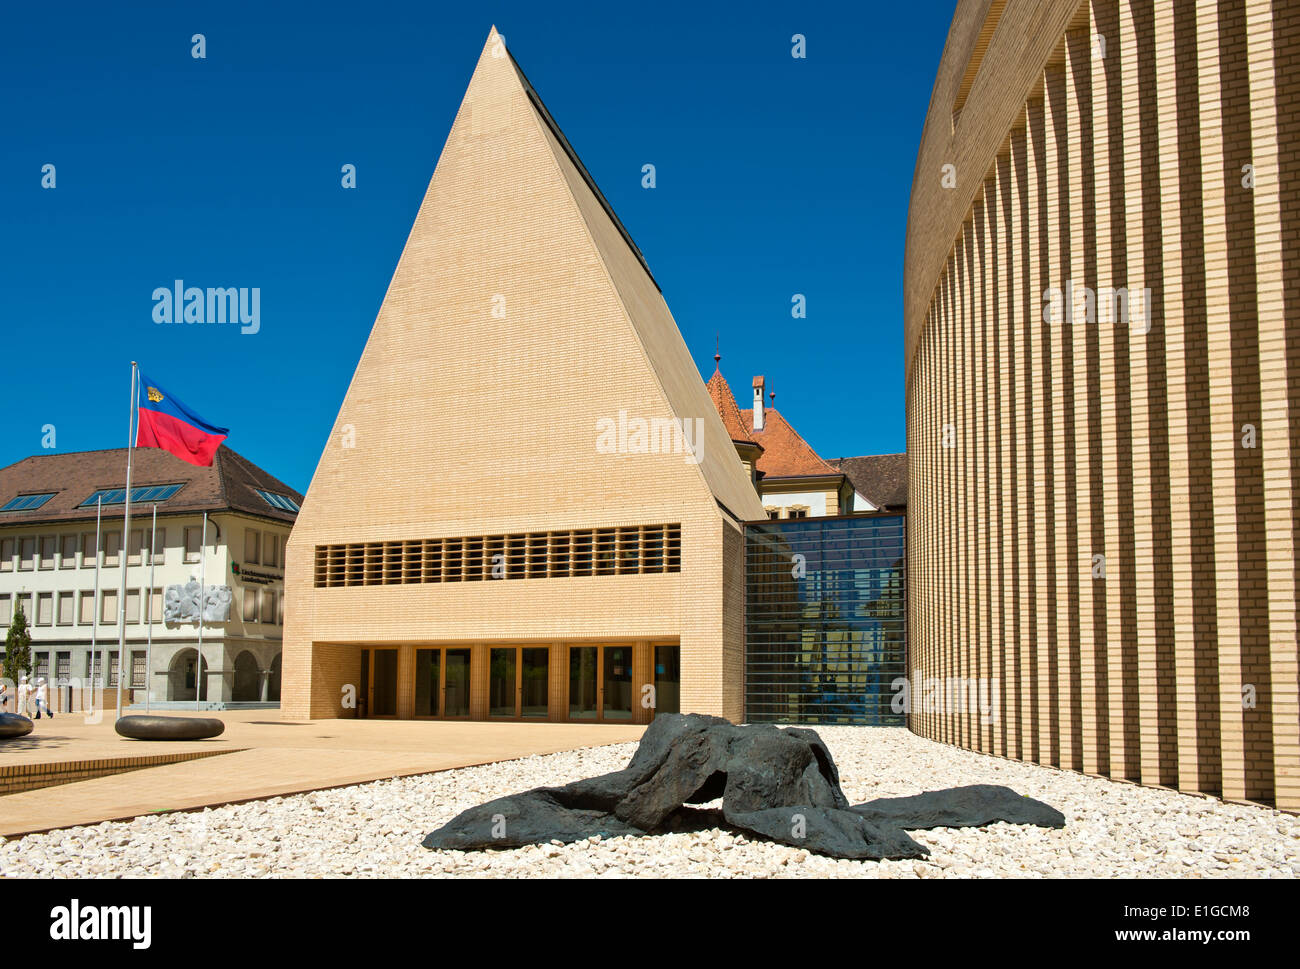 Sculpture Welwitschia at the House of Parliament building in Vaduz, Principality of Liechtenstein, Europe - Stock Image